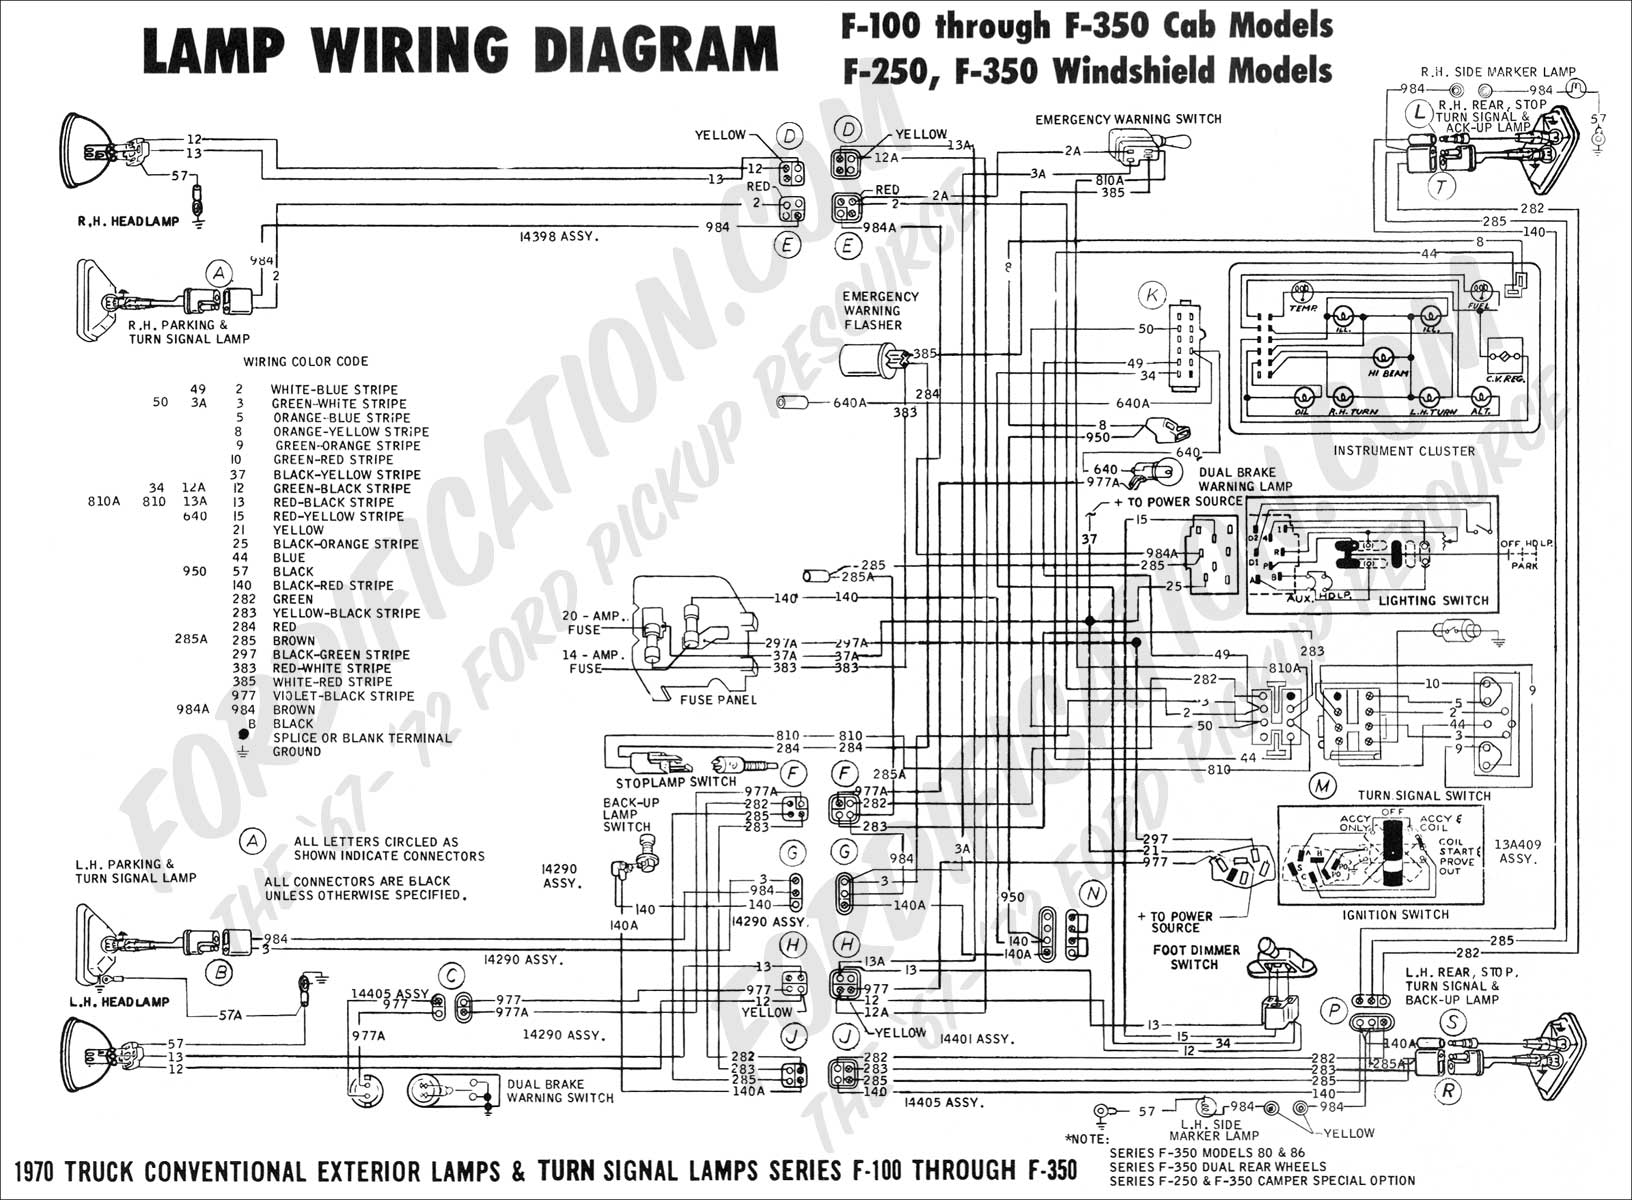 wiring diagram_70ext lights01 1986 ford f250 wiring diagram ford truck fuel system diagram 1992 ford f700 wiring diagram at crackthecode.co